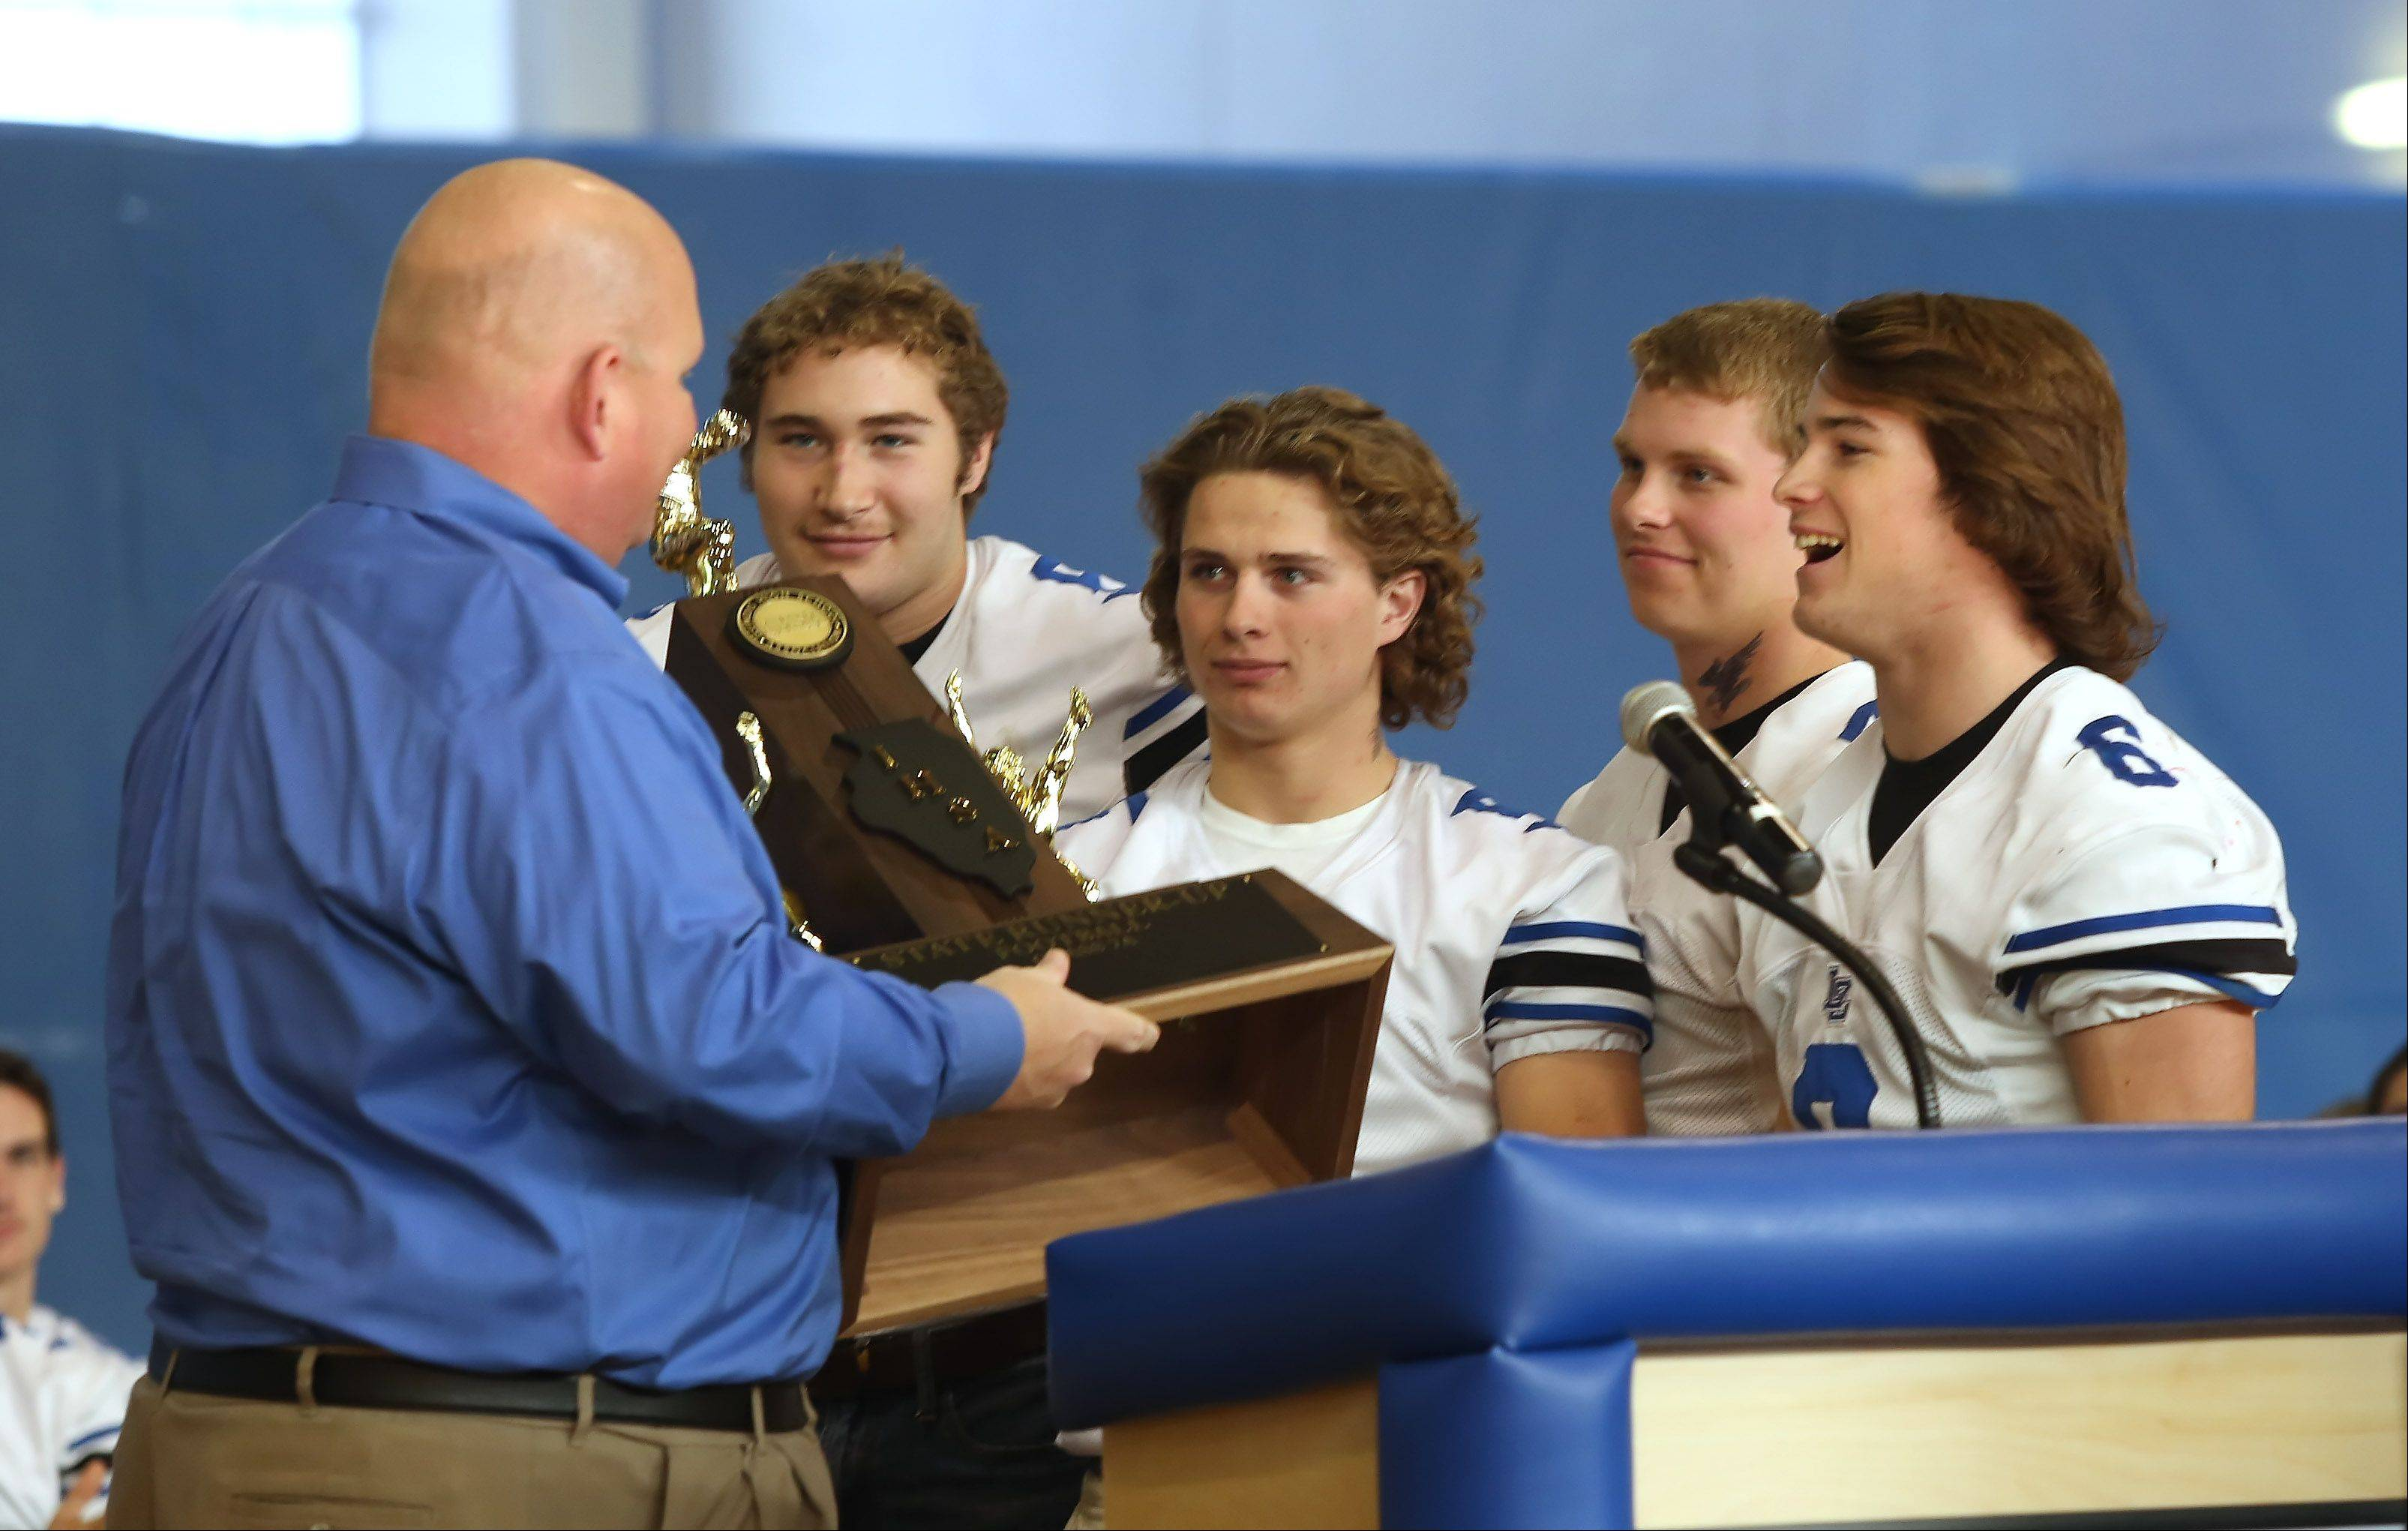 Team captains Sean Lynch, right, Noah Allgood, Sam Walstrom and Colton Moskal present their trophy to Principal Kent Nightlinger during a rally Sunday for the Lake Zurich High School football team.